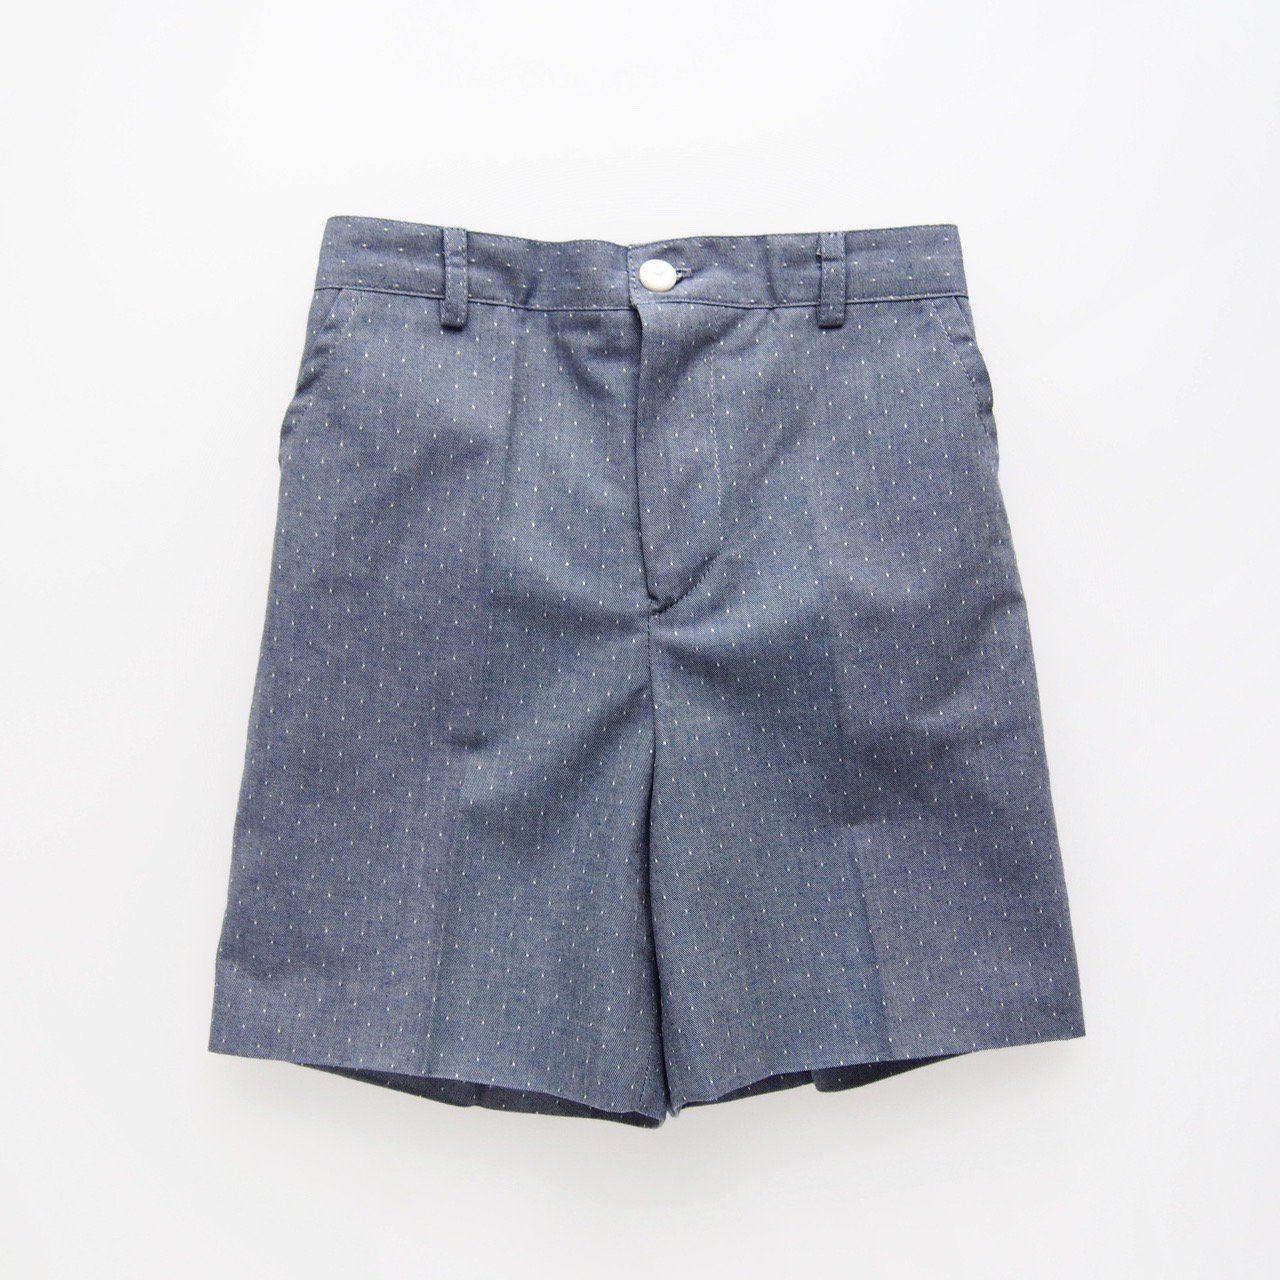 <img class='new_mark_img1' src='https://img.shop-pro.jp/img/new/icons14.gif' style='border:none;display:inline;margin:0px;padding:0px;width:auto;' />Amaia Kids - Gull short (Dots denim)